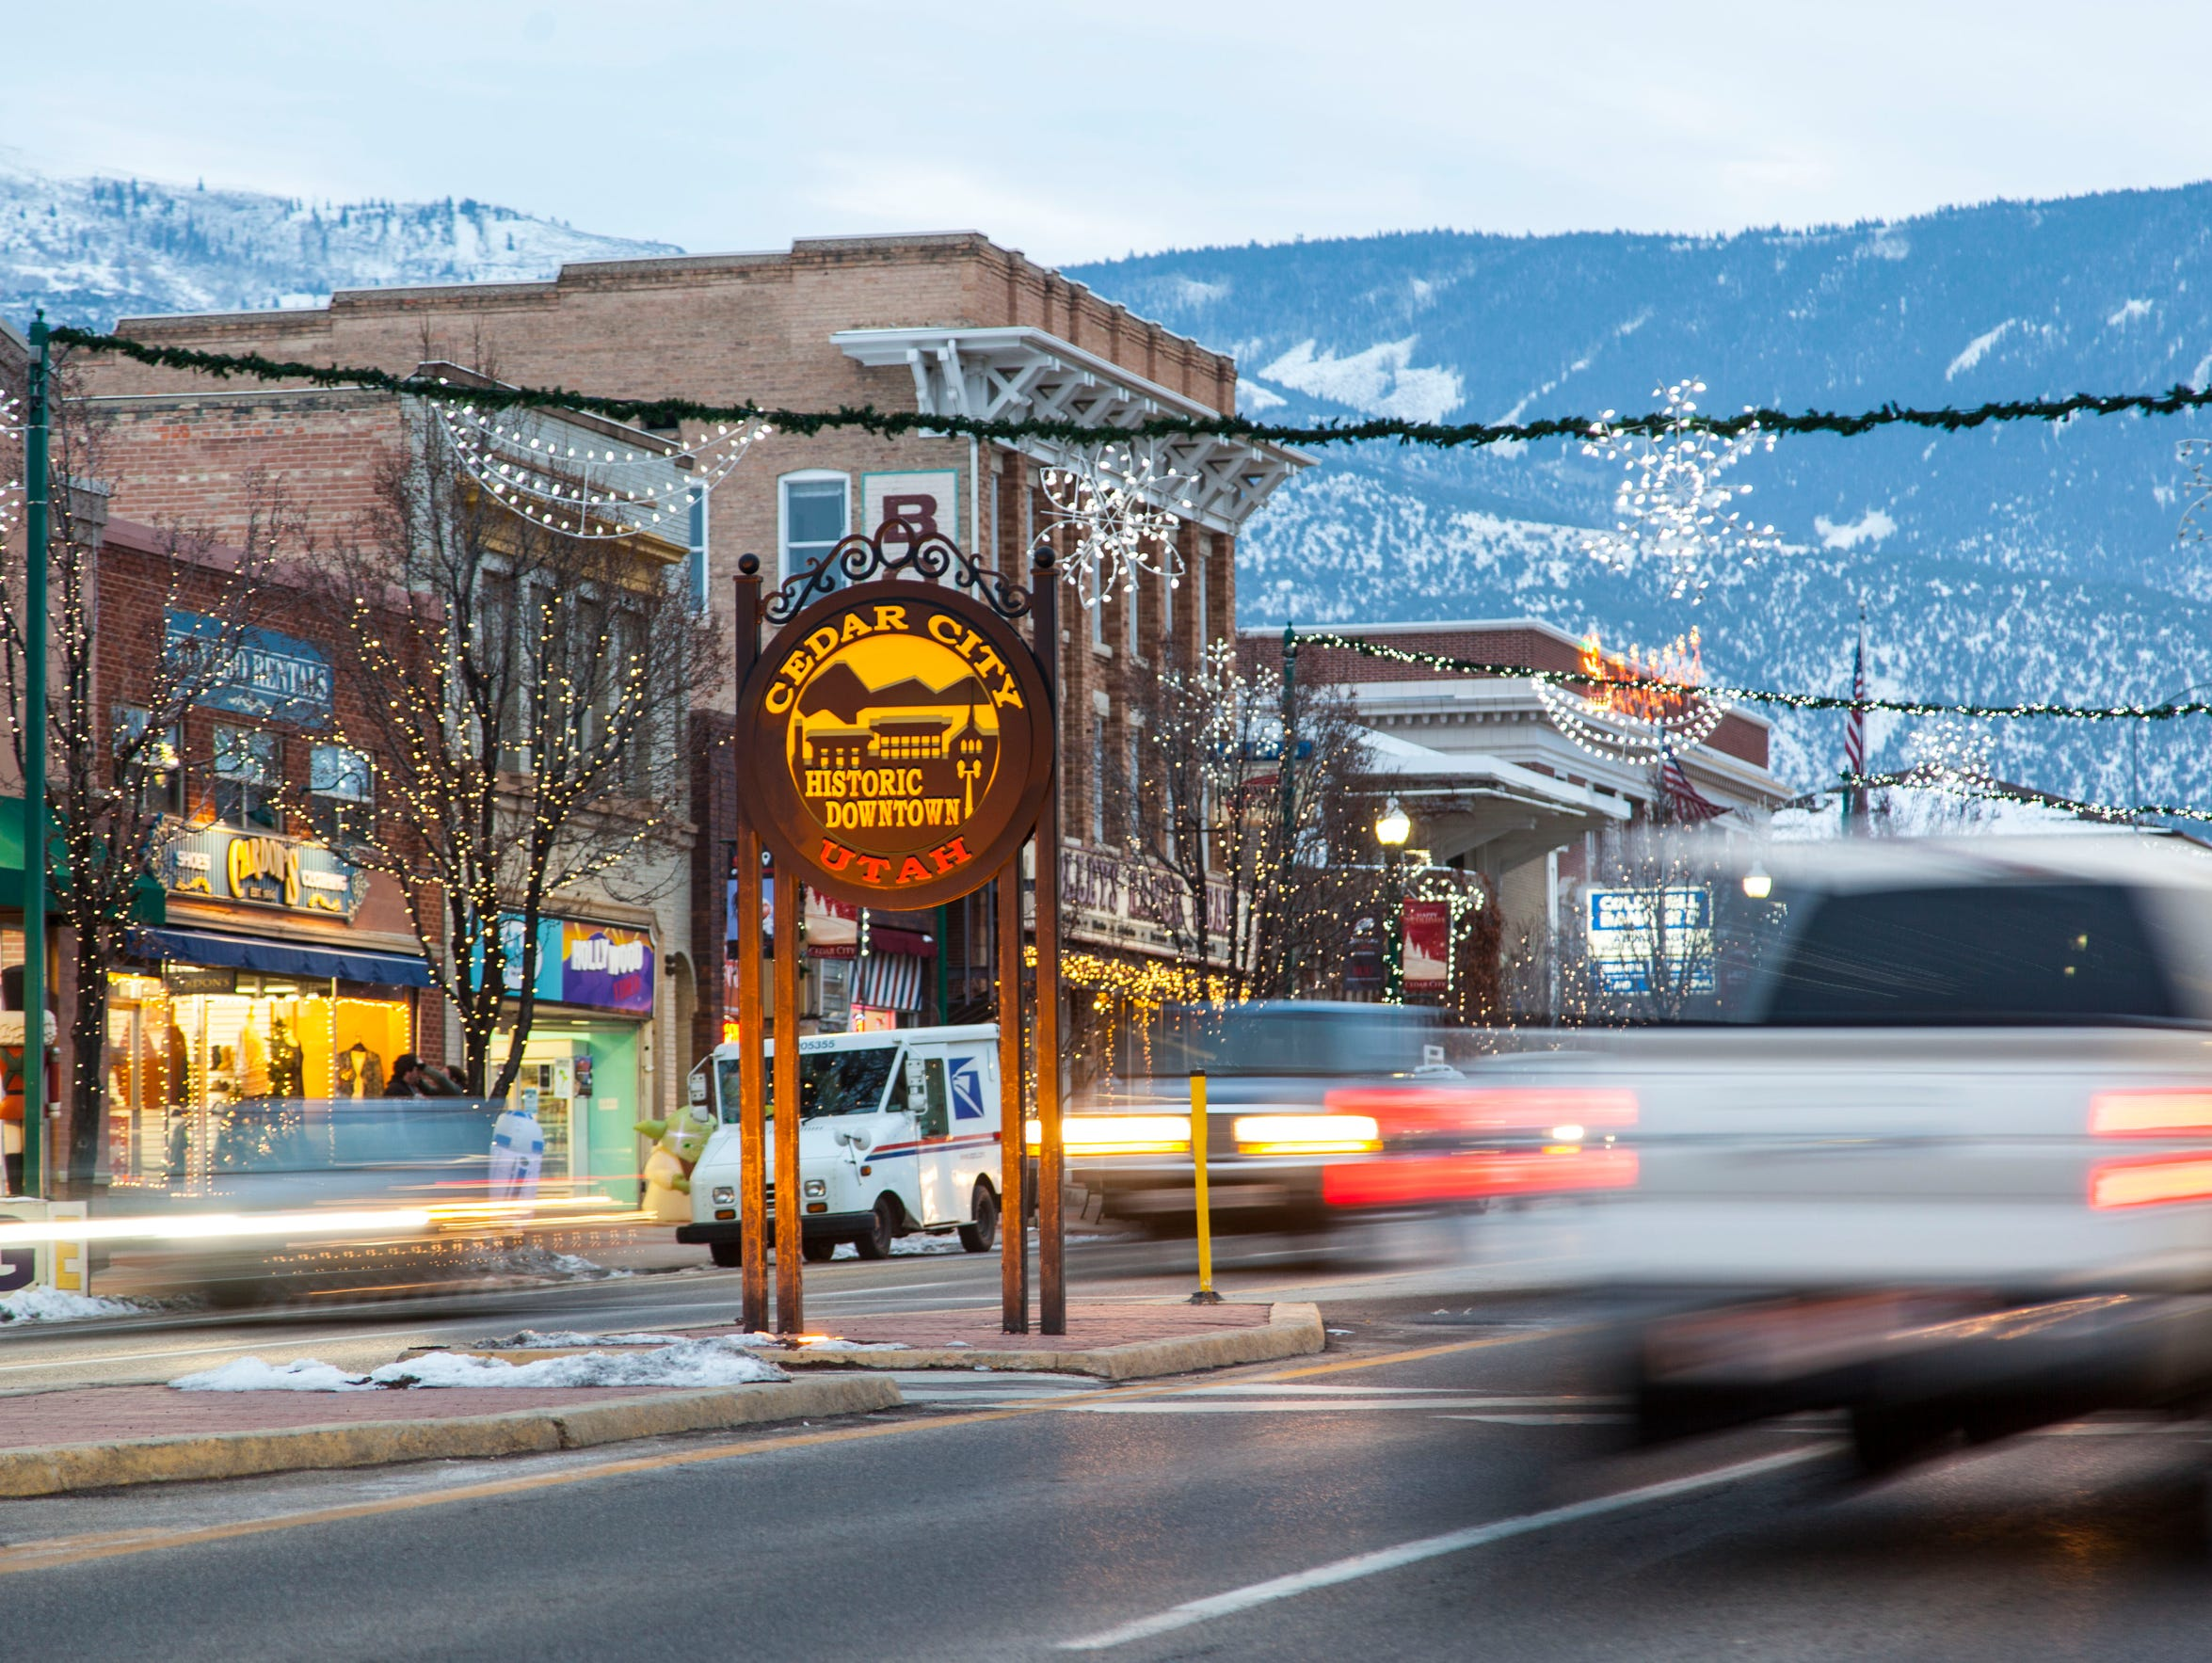 Traffic passes through Cedar City on Main Street.